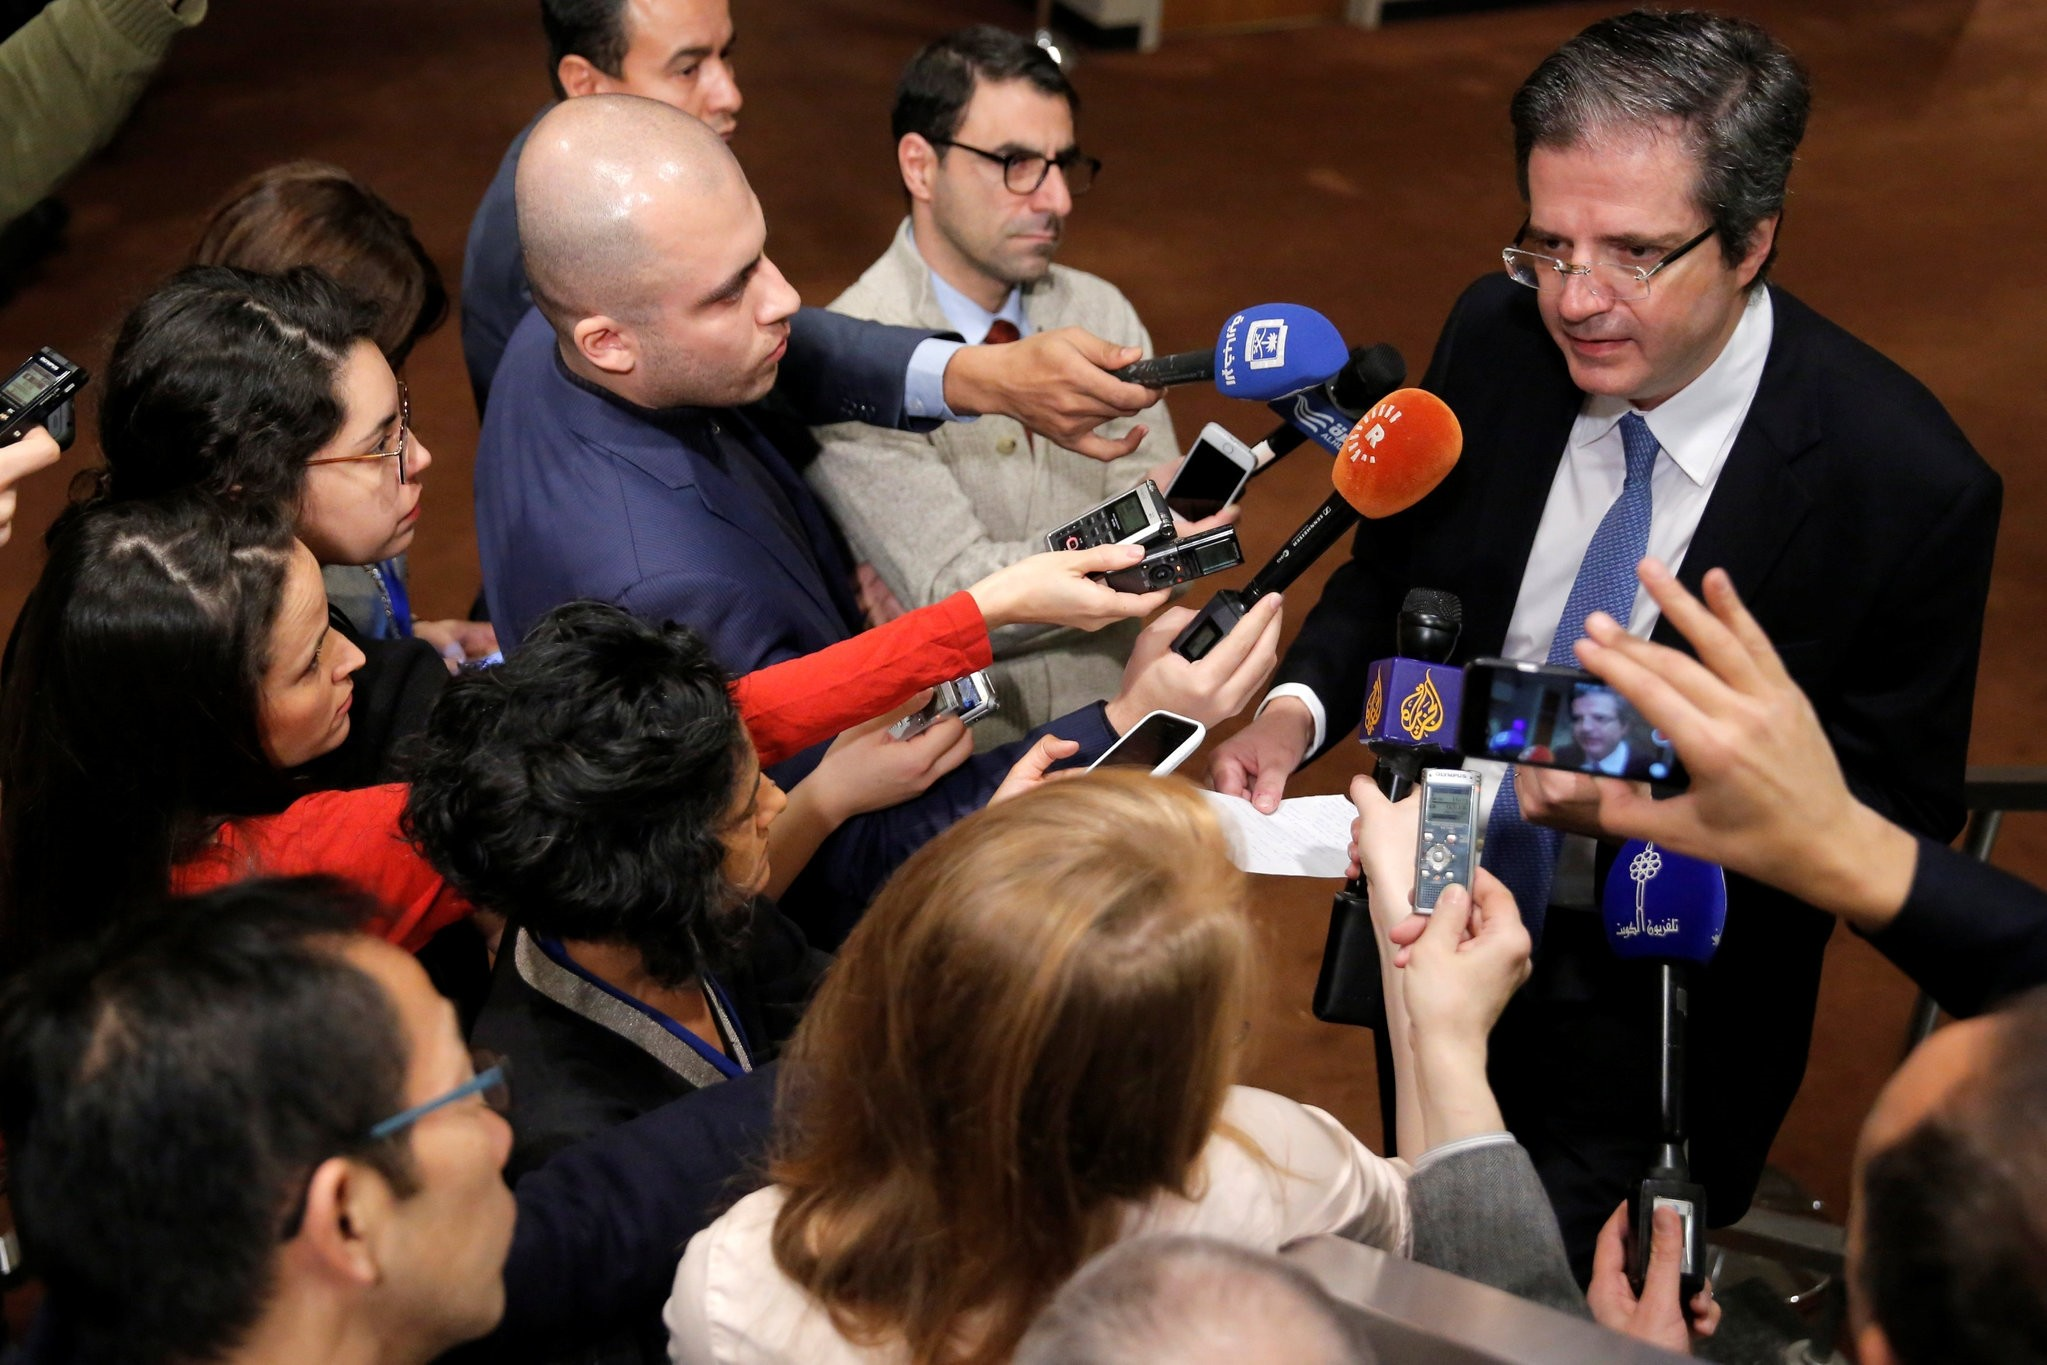 Permanent Representative of France to the United Nations Francois Delattre speaks to media ahead of a United Nations Security Council vote, December 18, 2016. (REUTERS Photo)